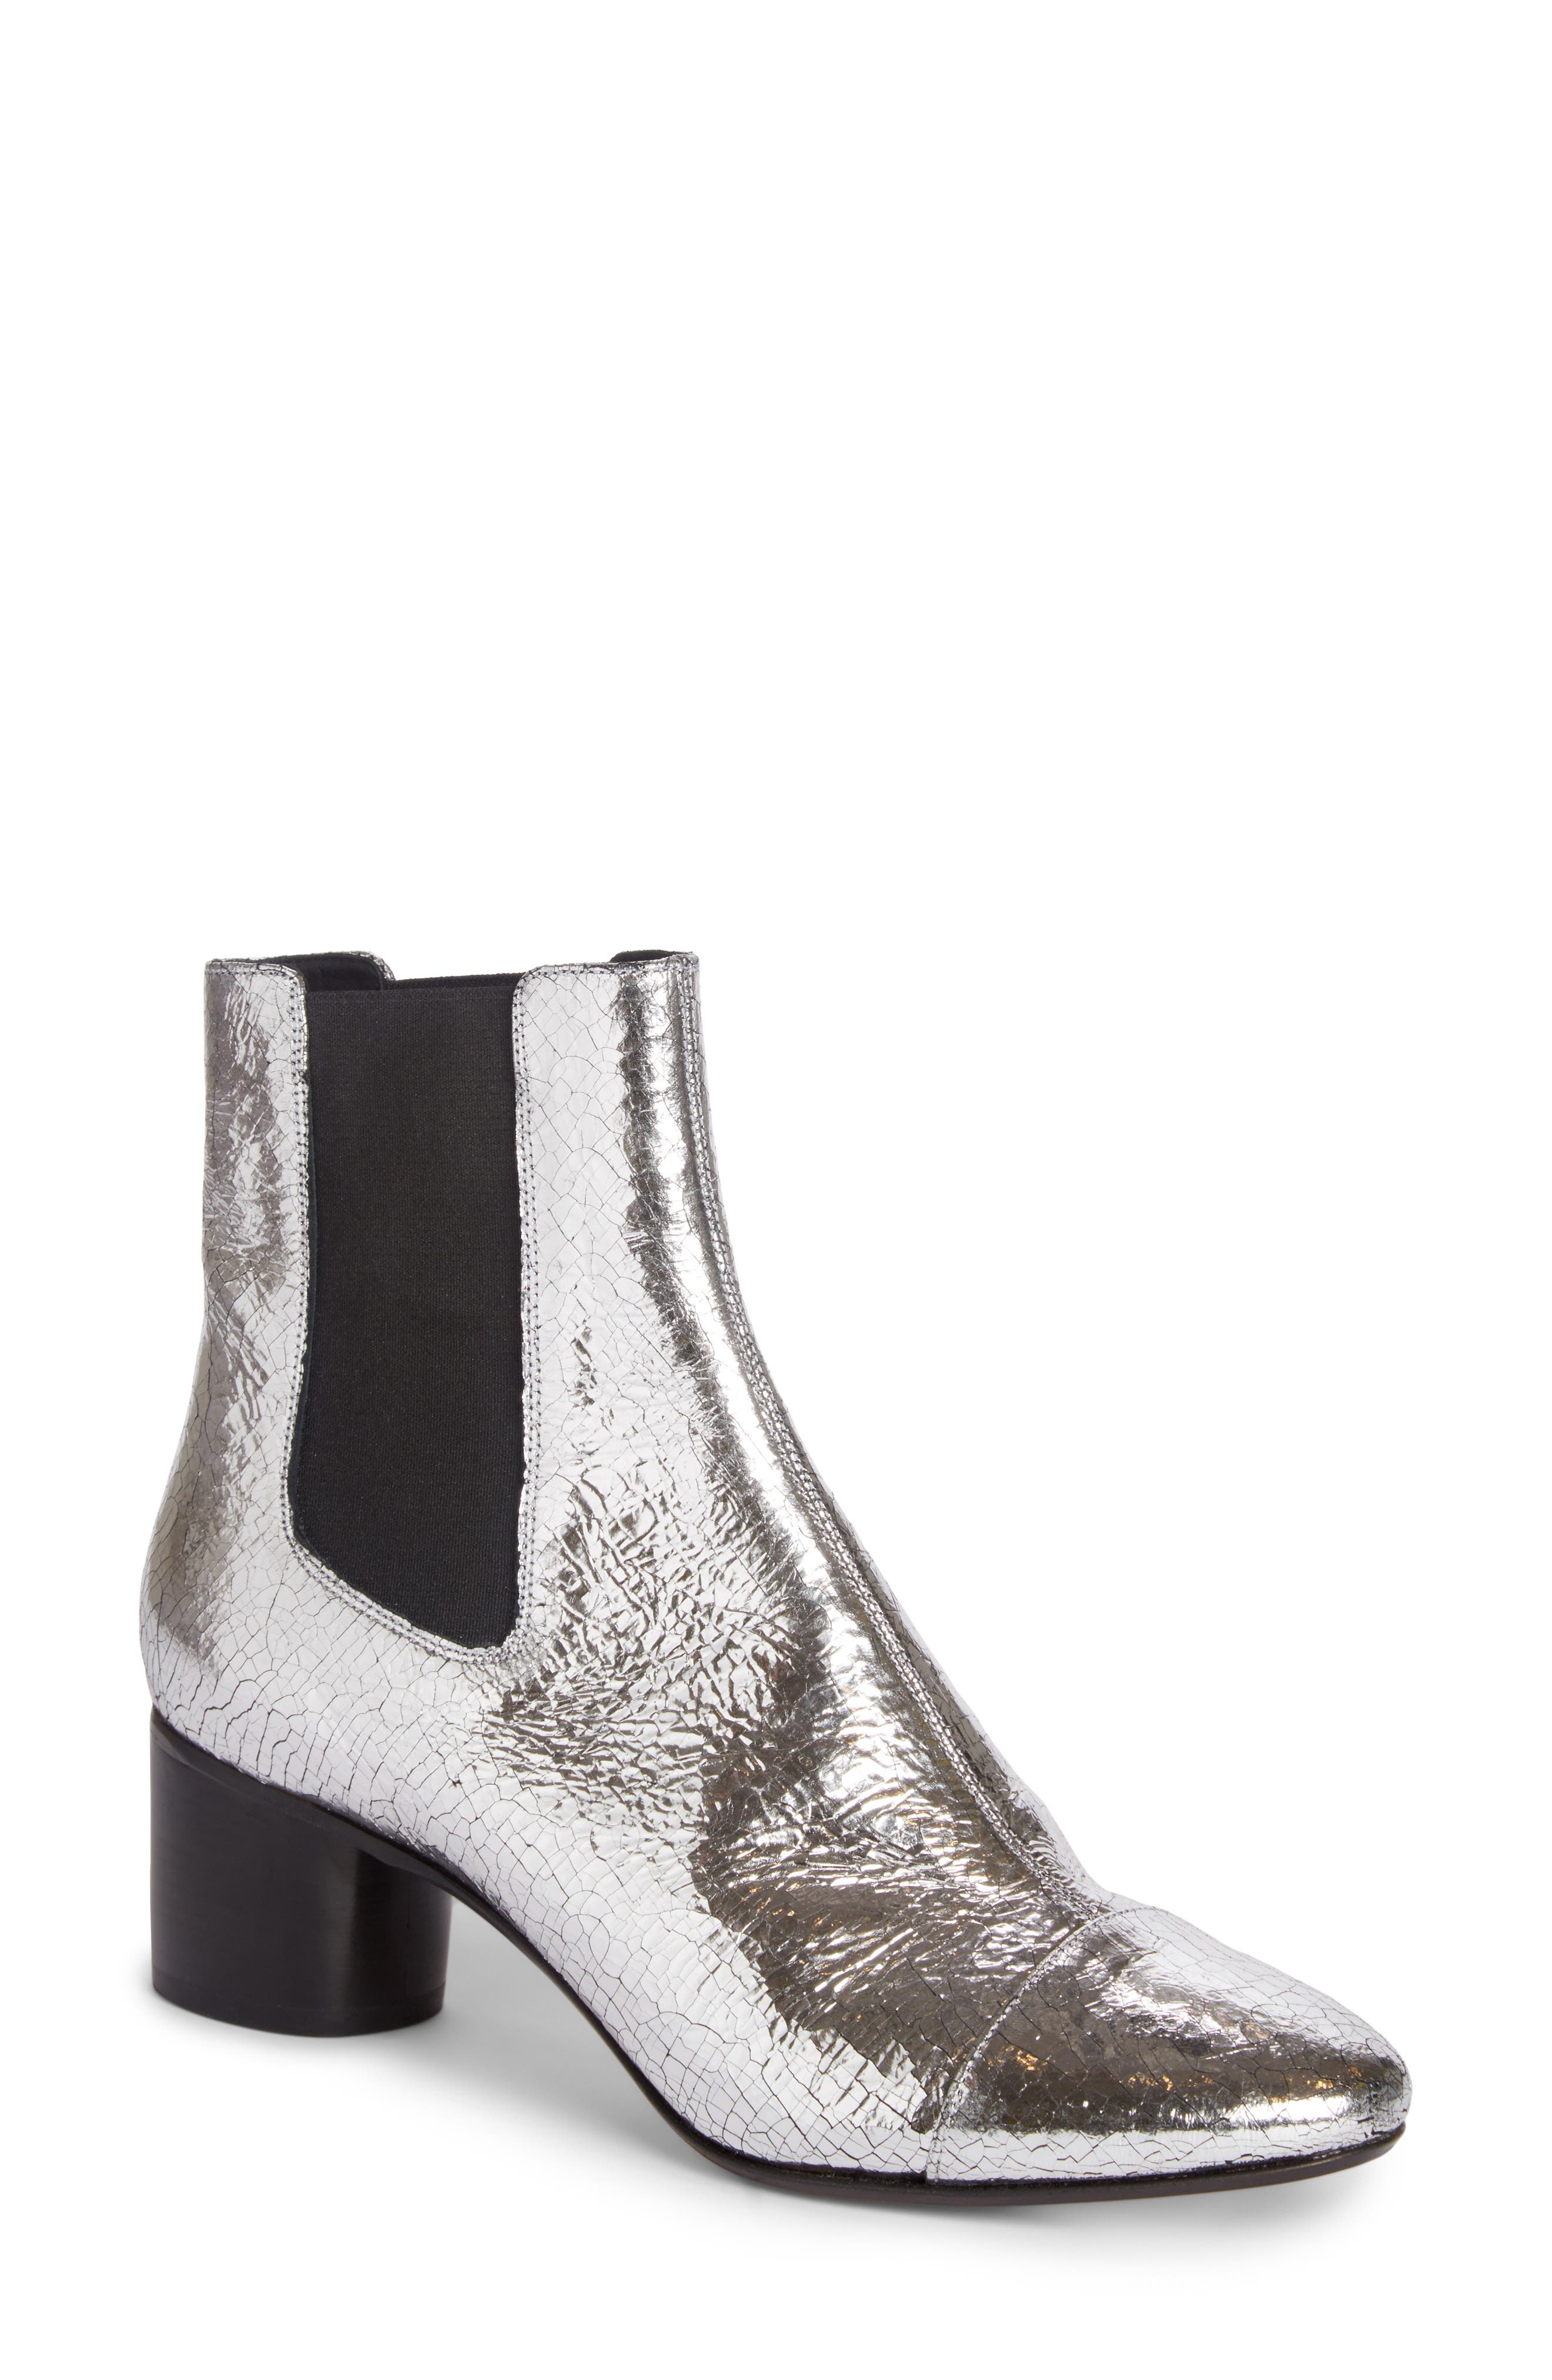 Danelya Chelsea Boot,                         Main,                         color, Silver